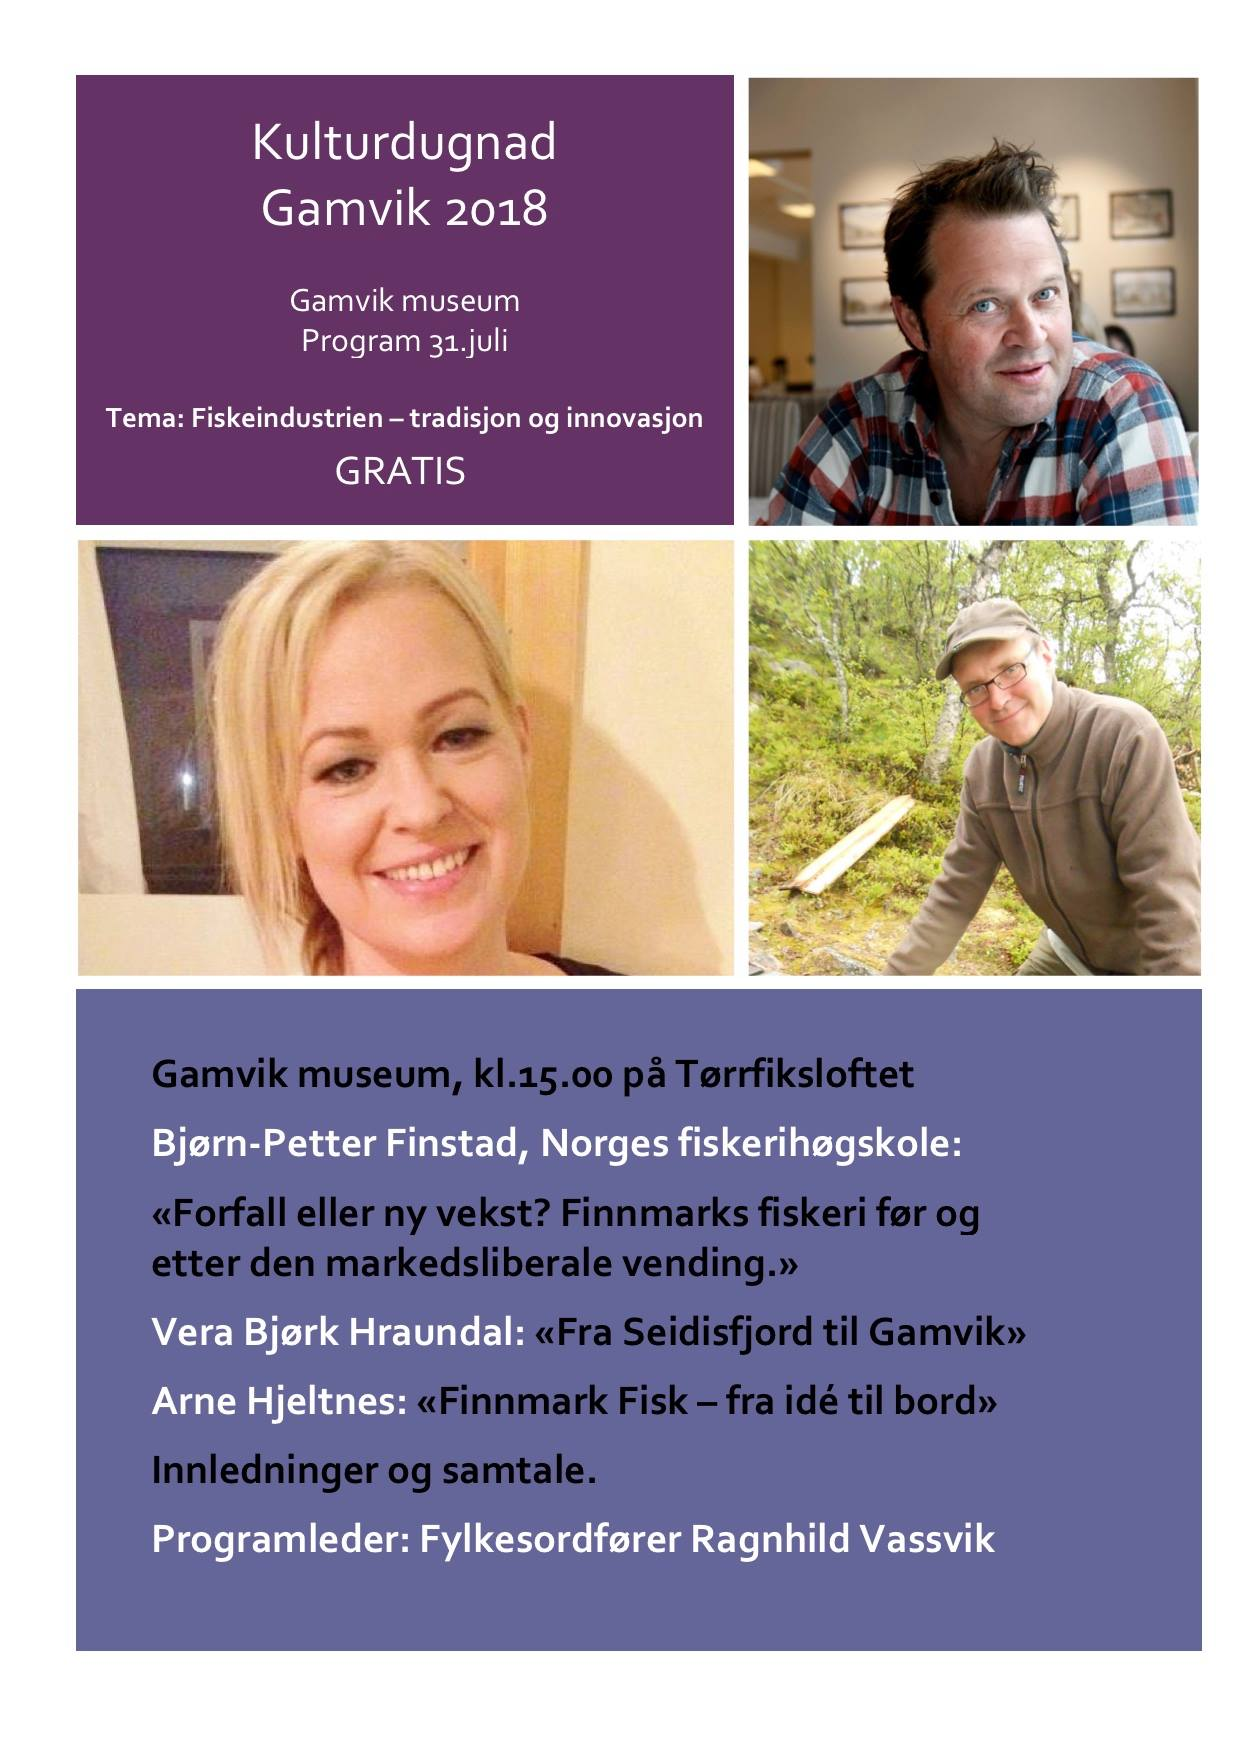 Program Kulturdugnad Gamvik 2018 4